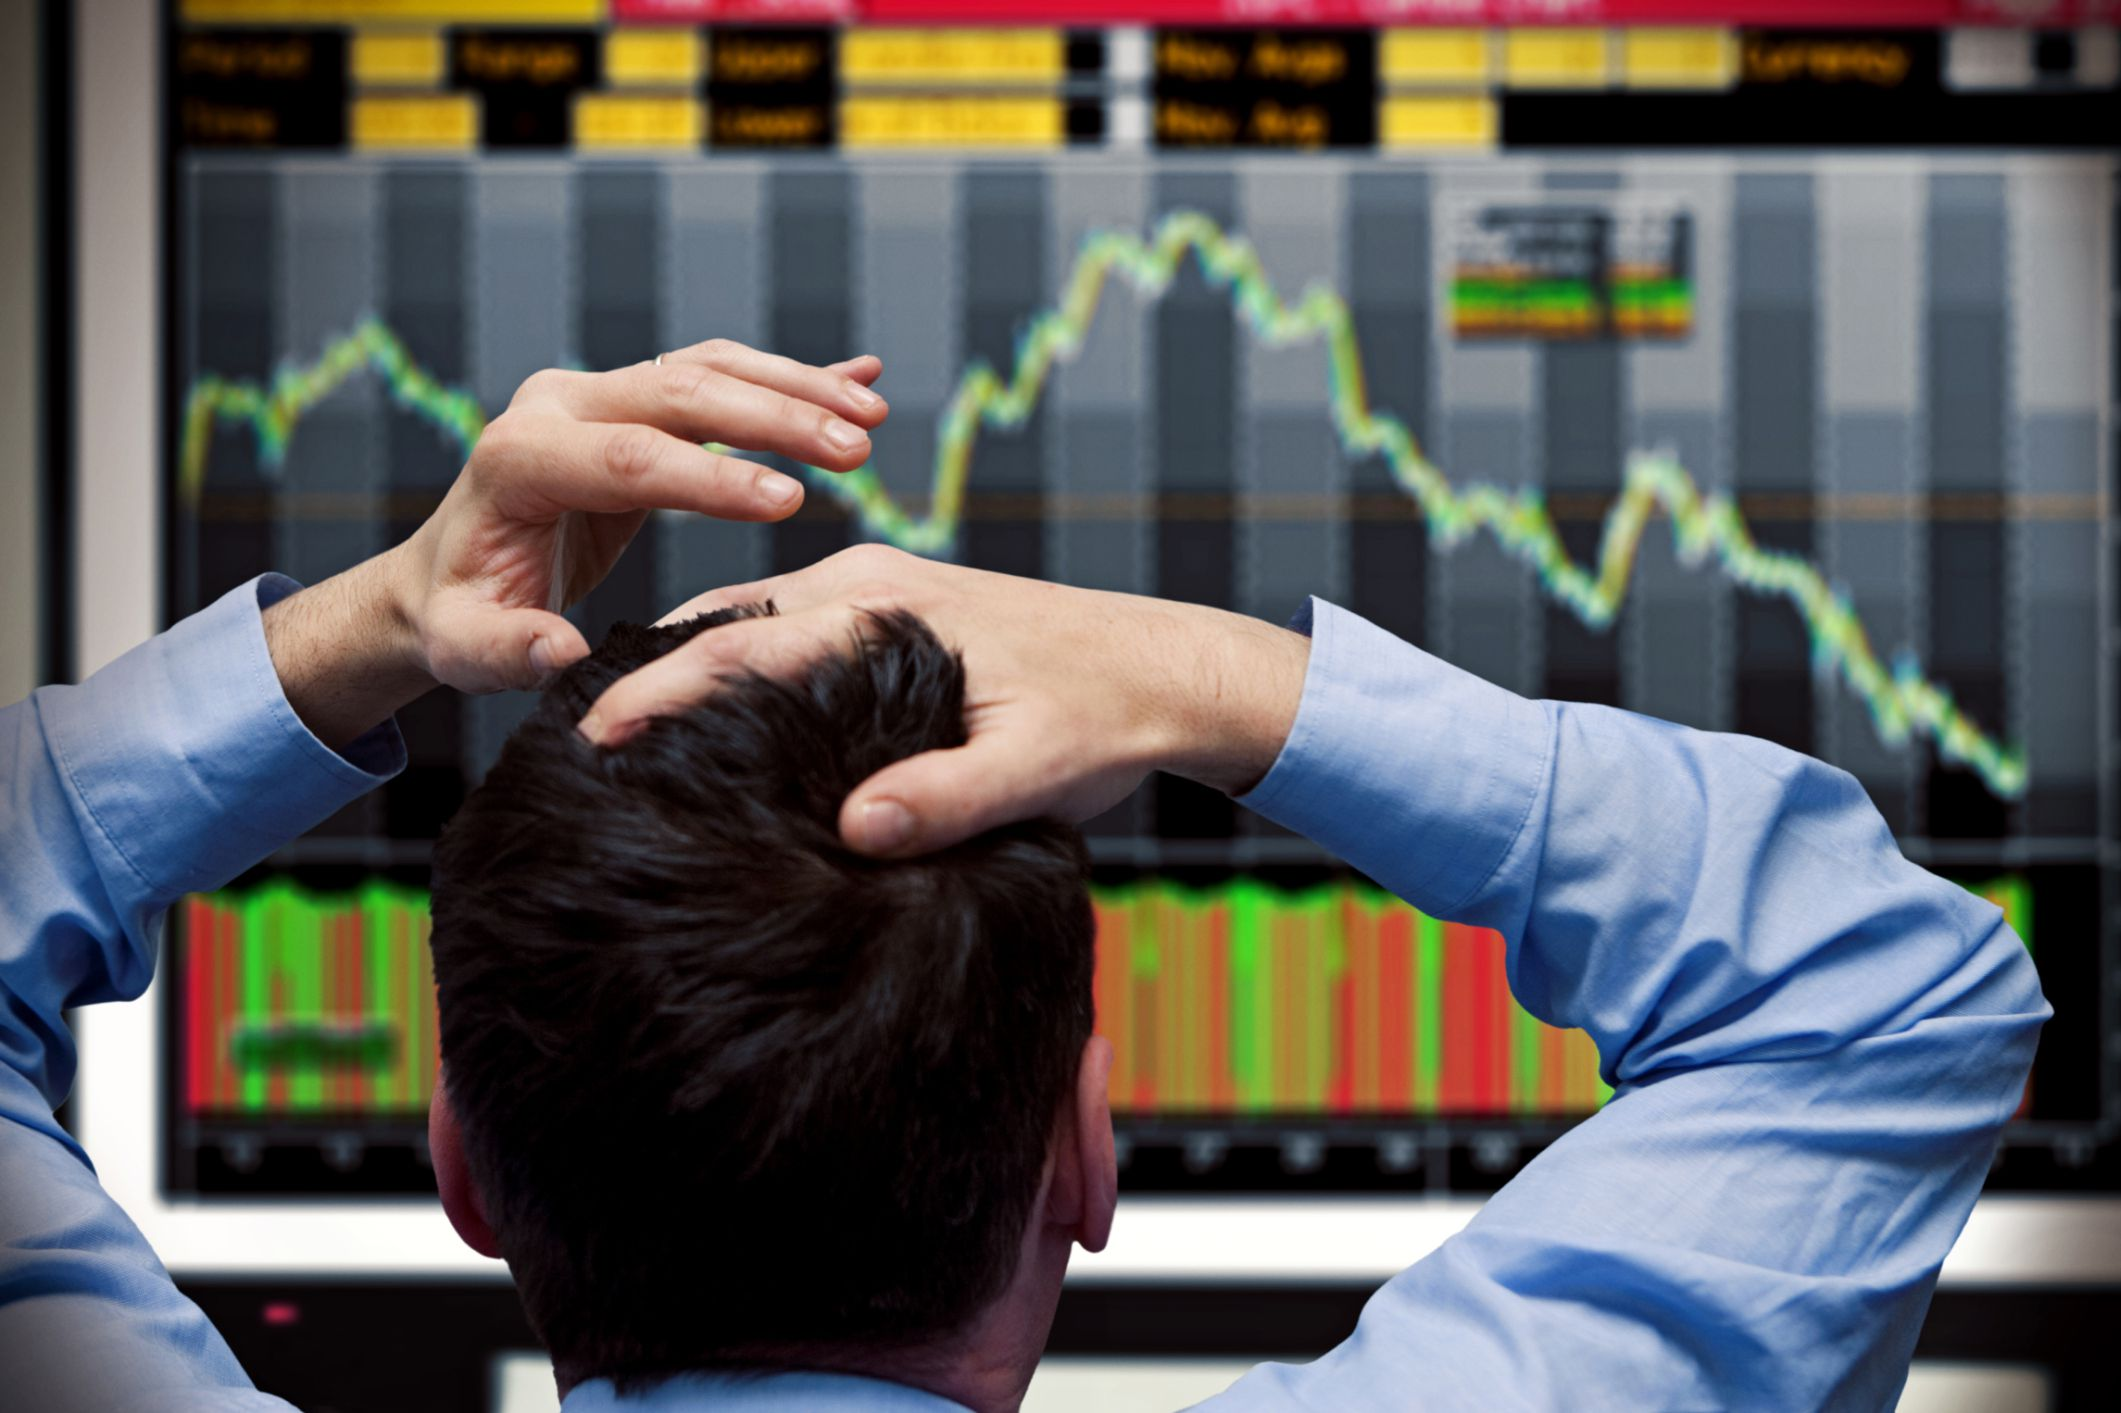 Recover money lost in stock market